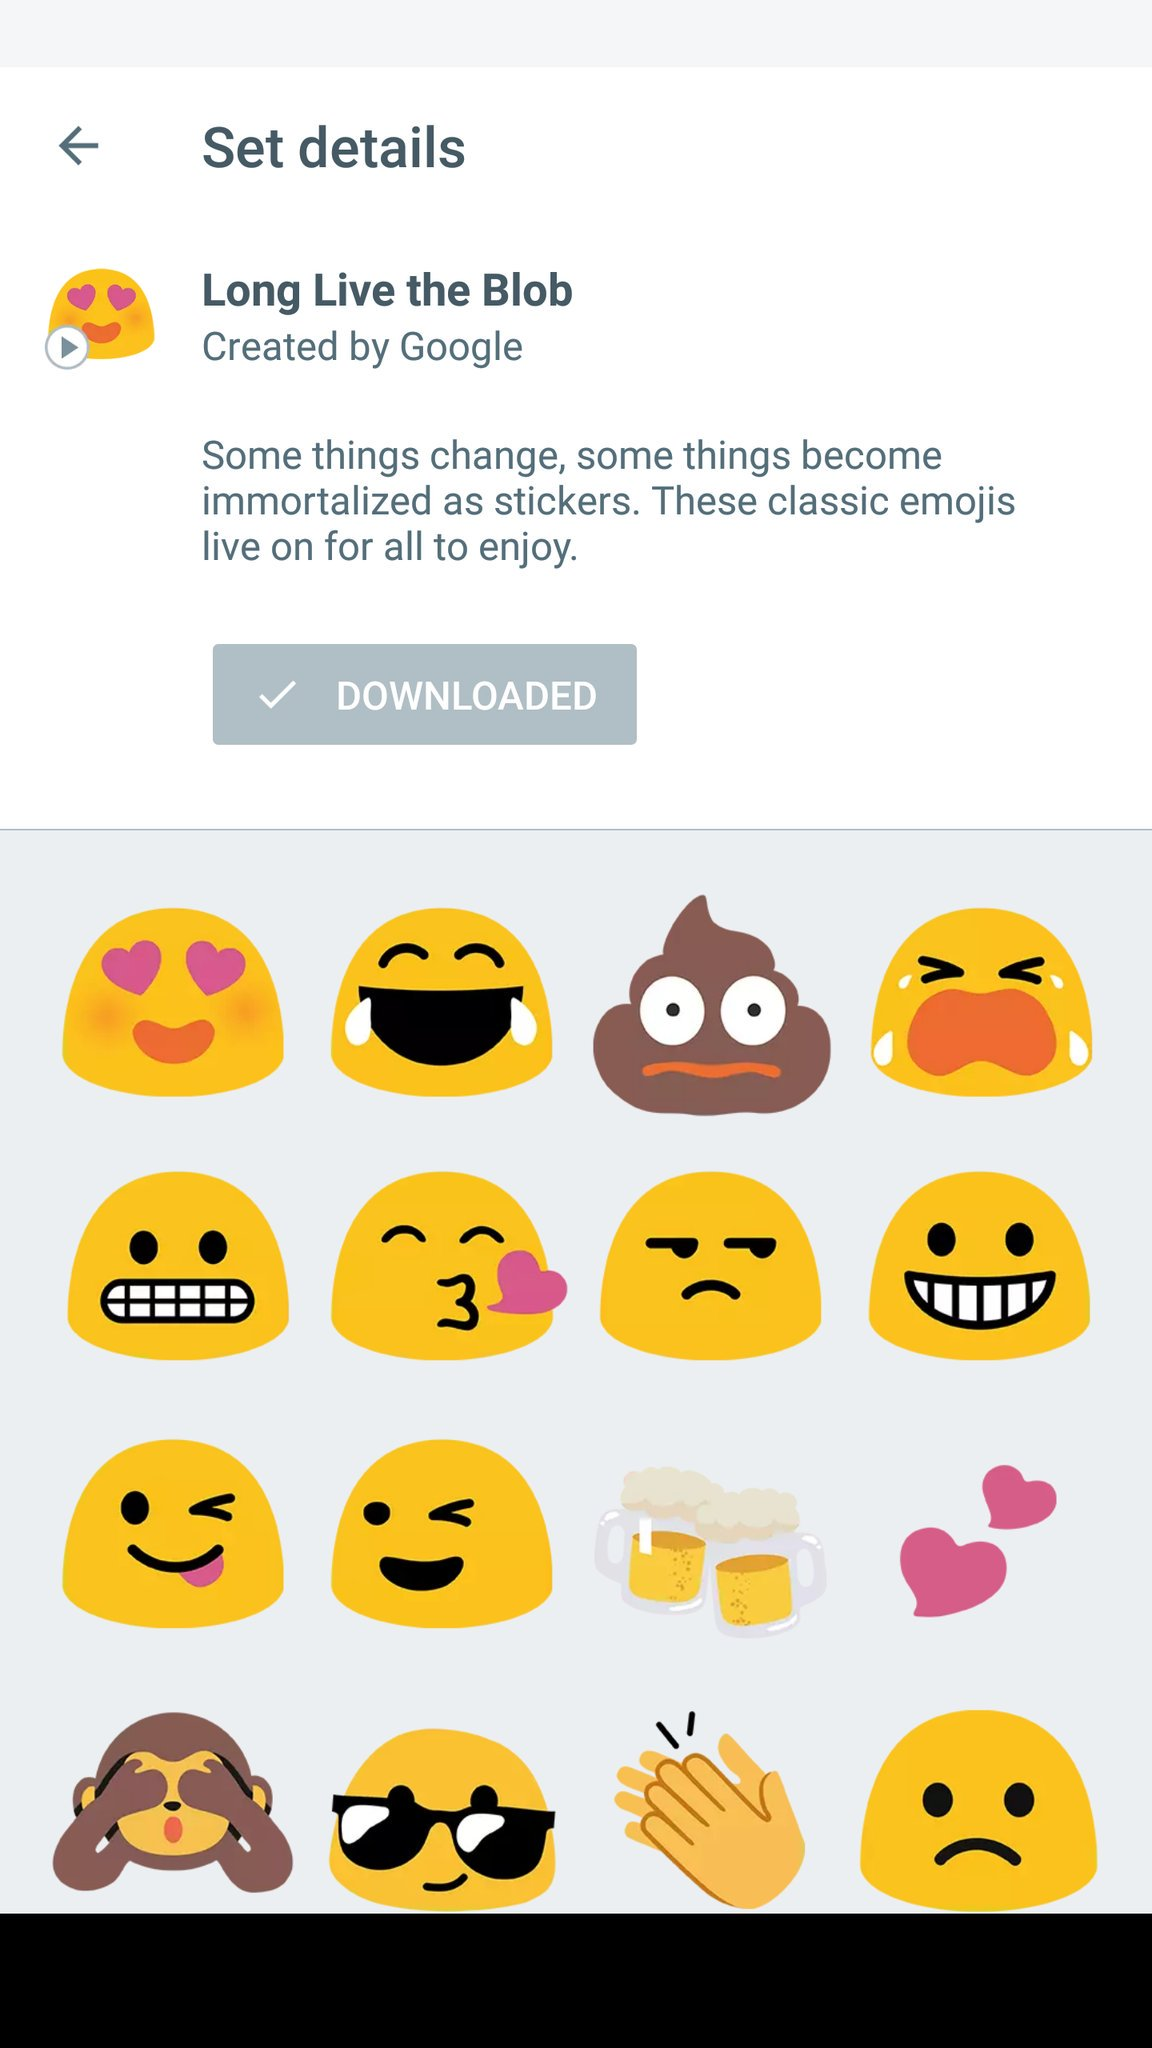 World Emoji Day With the Impending Arrival of 38 New Emoji